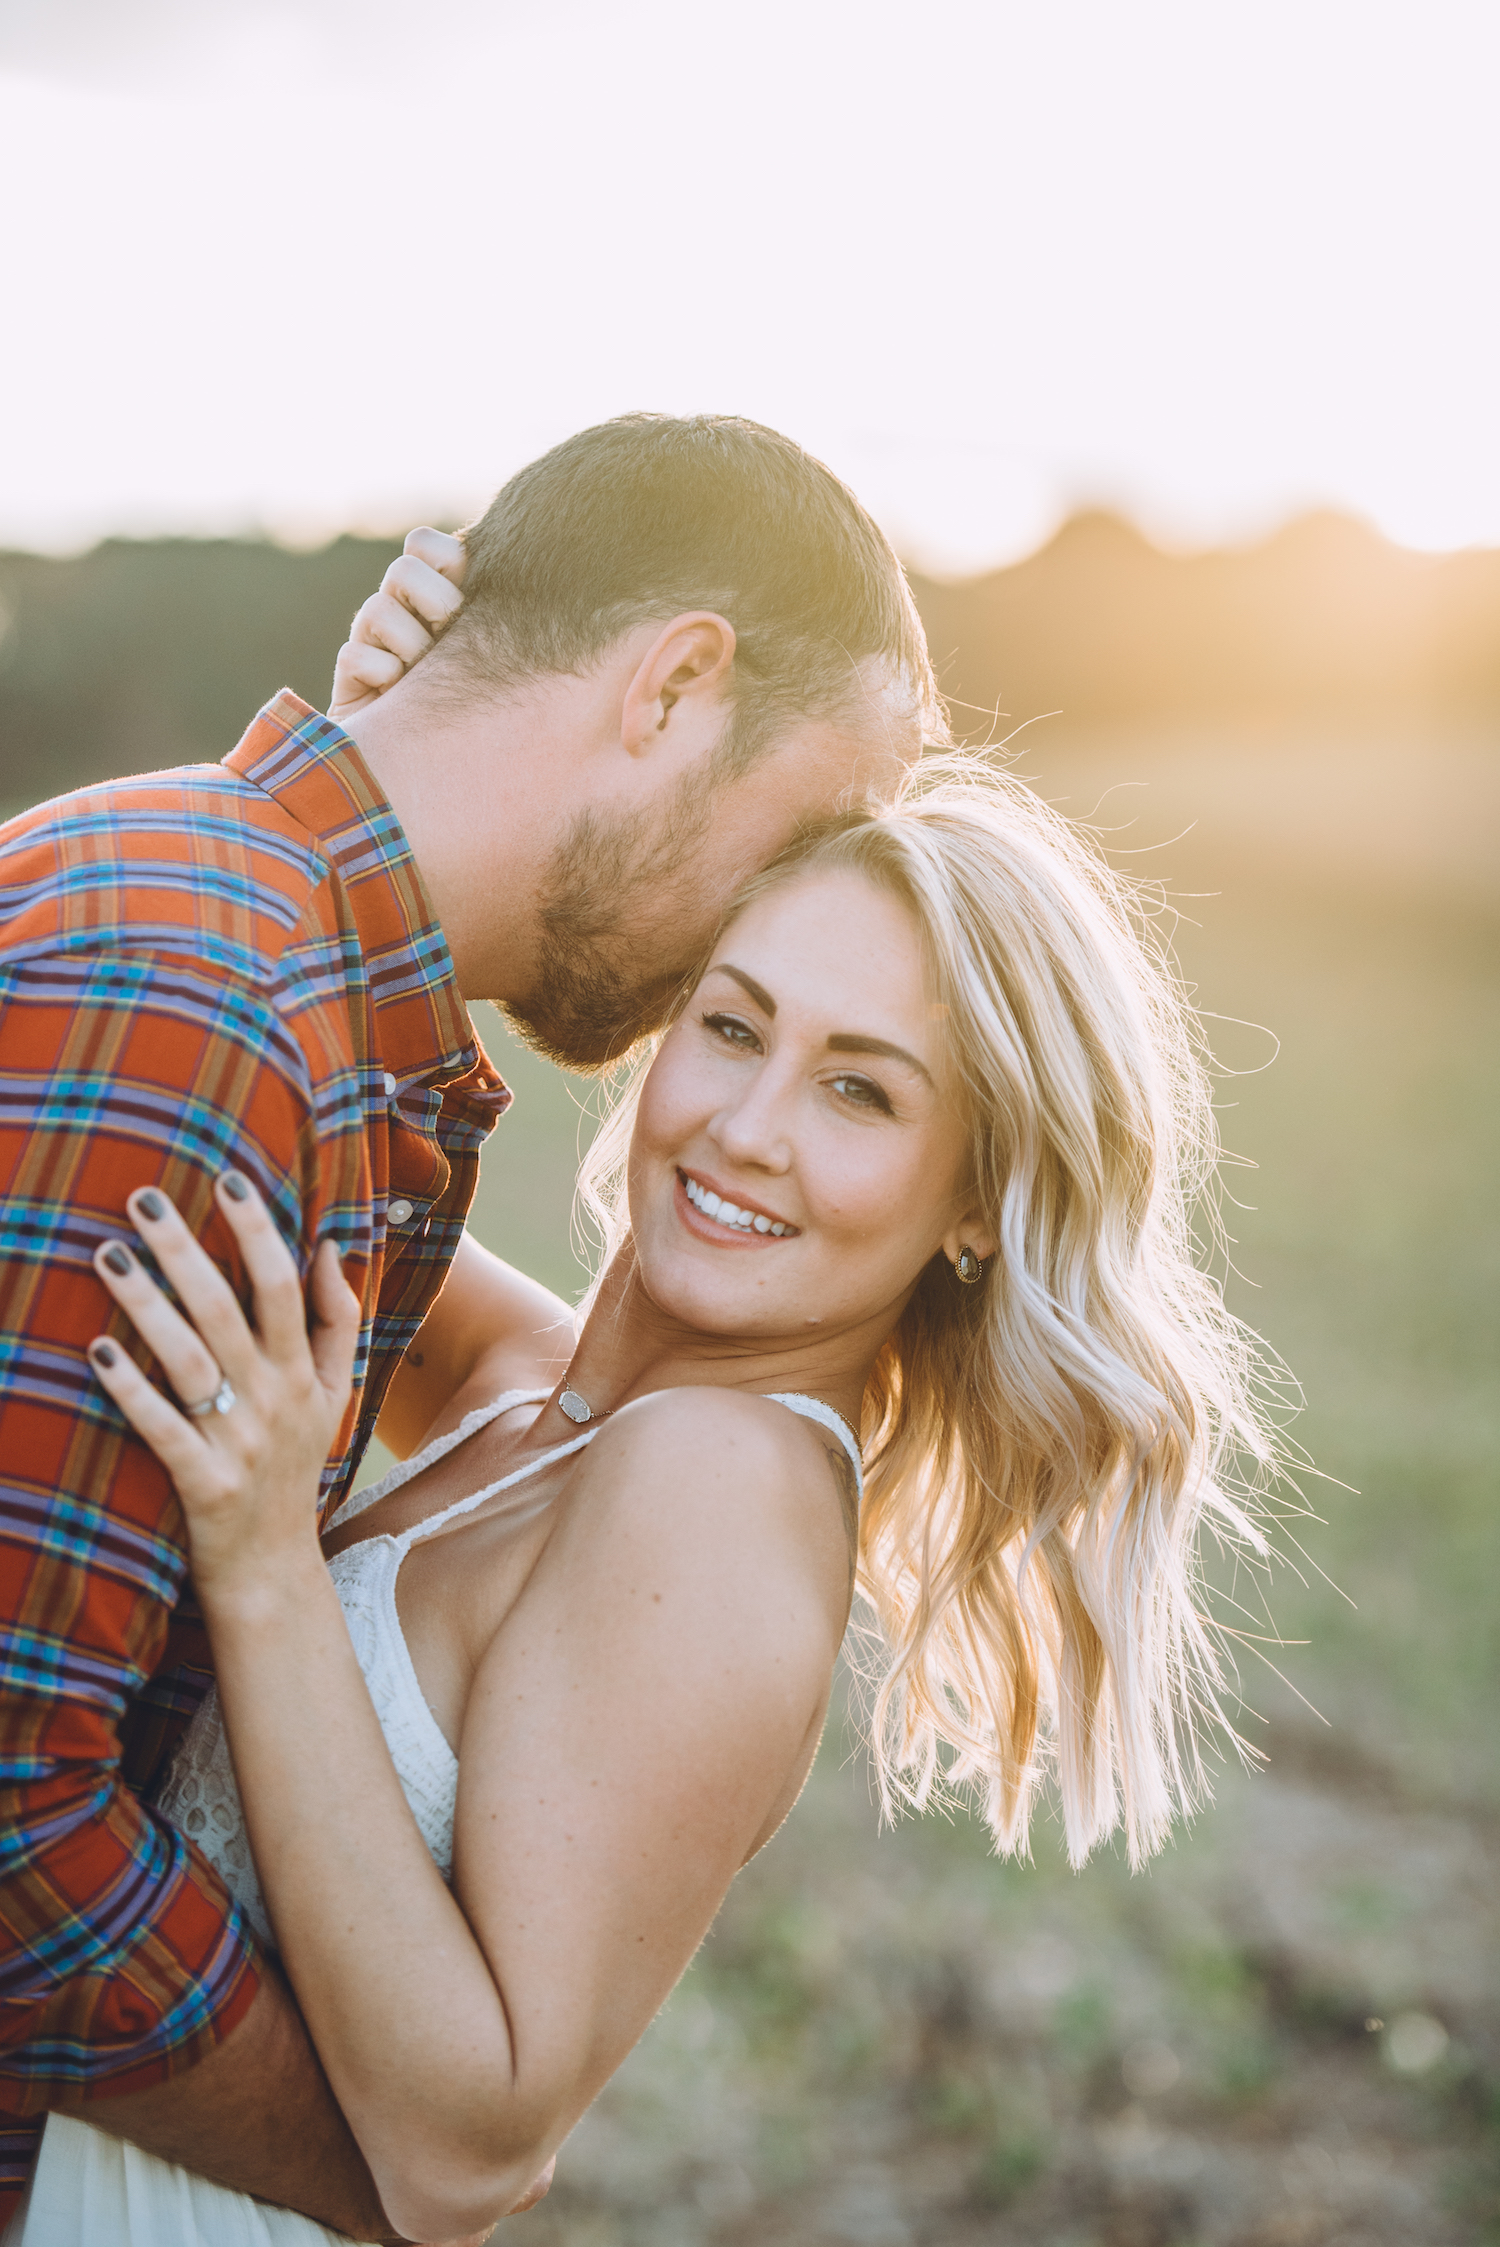 A&M Cunningham Photography Engagement Session-9767.jpg